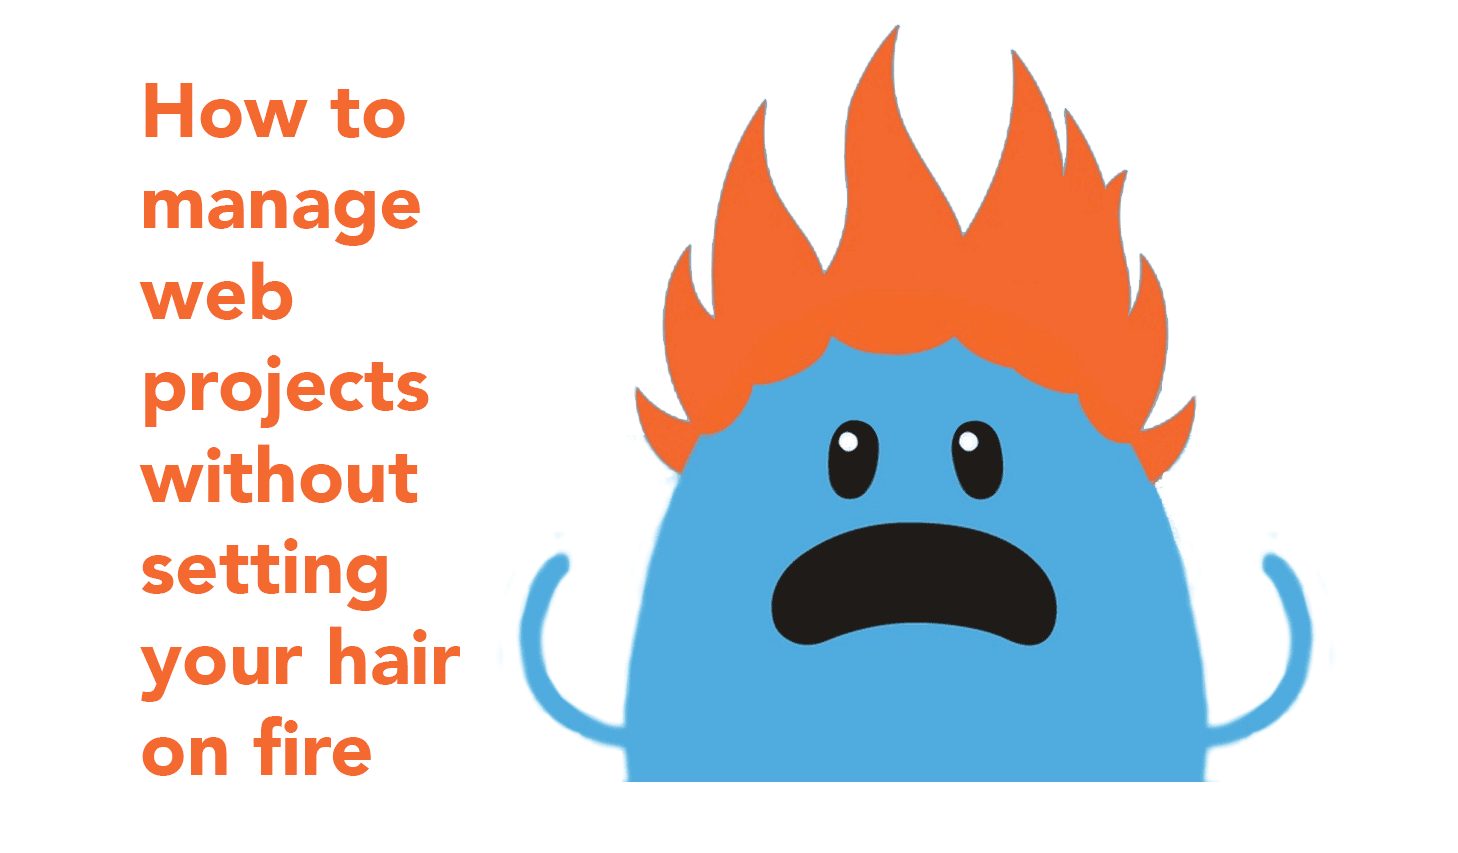 How to manage web projects without setting your hair on fire!.